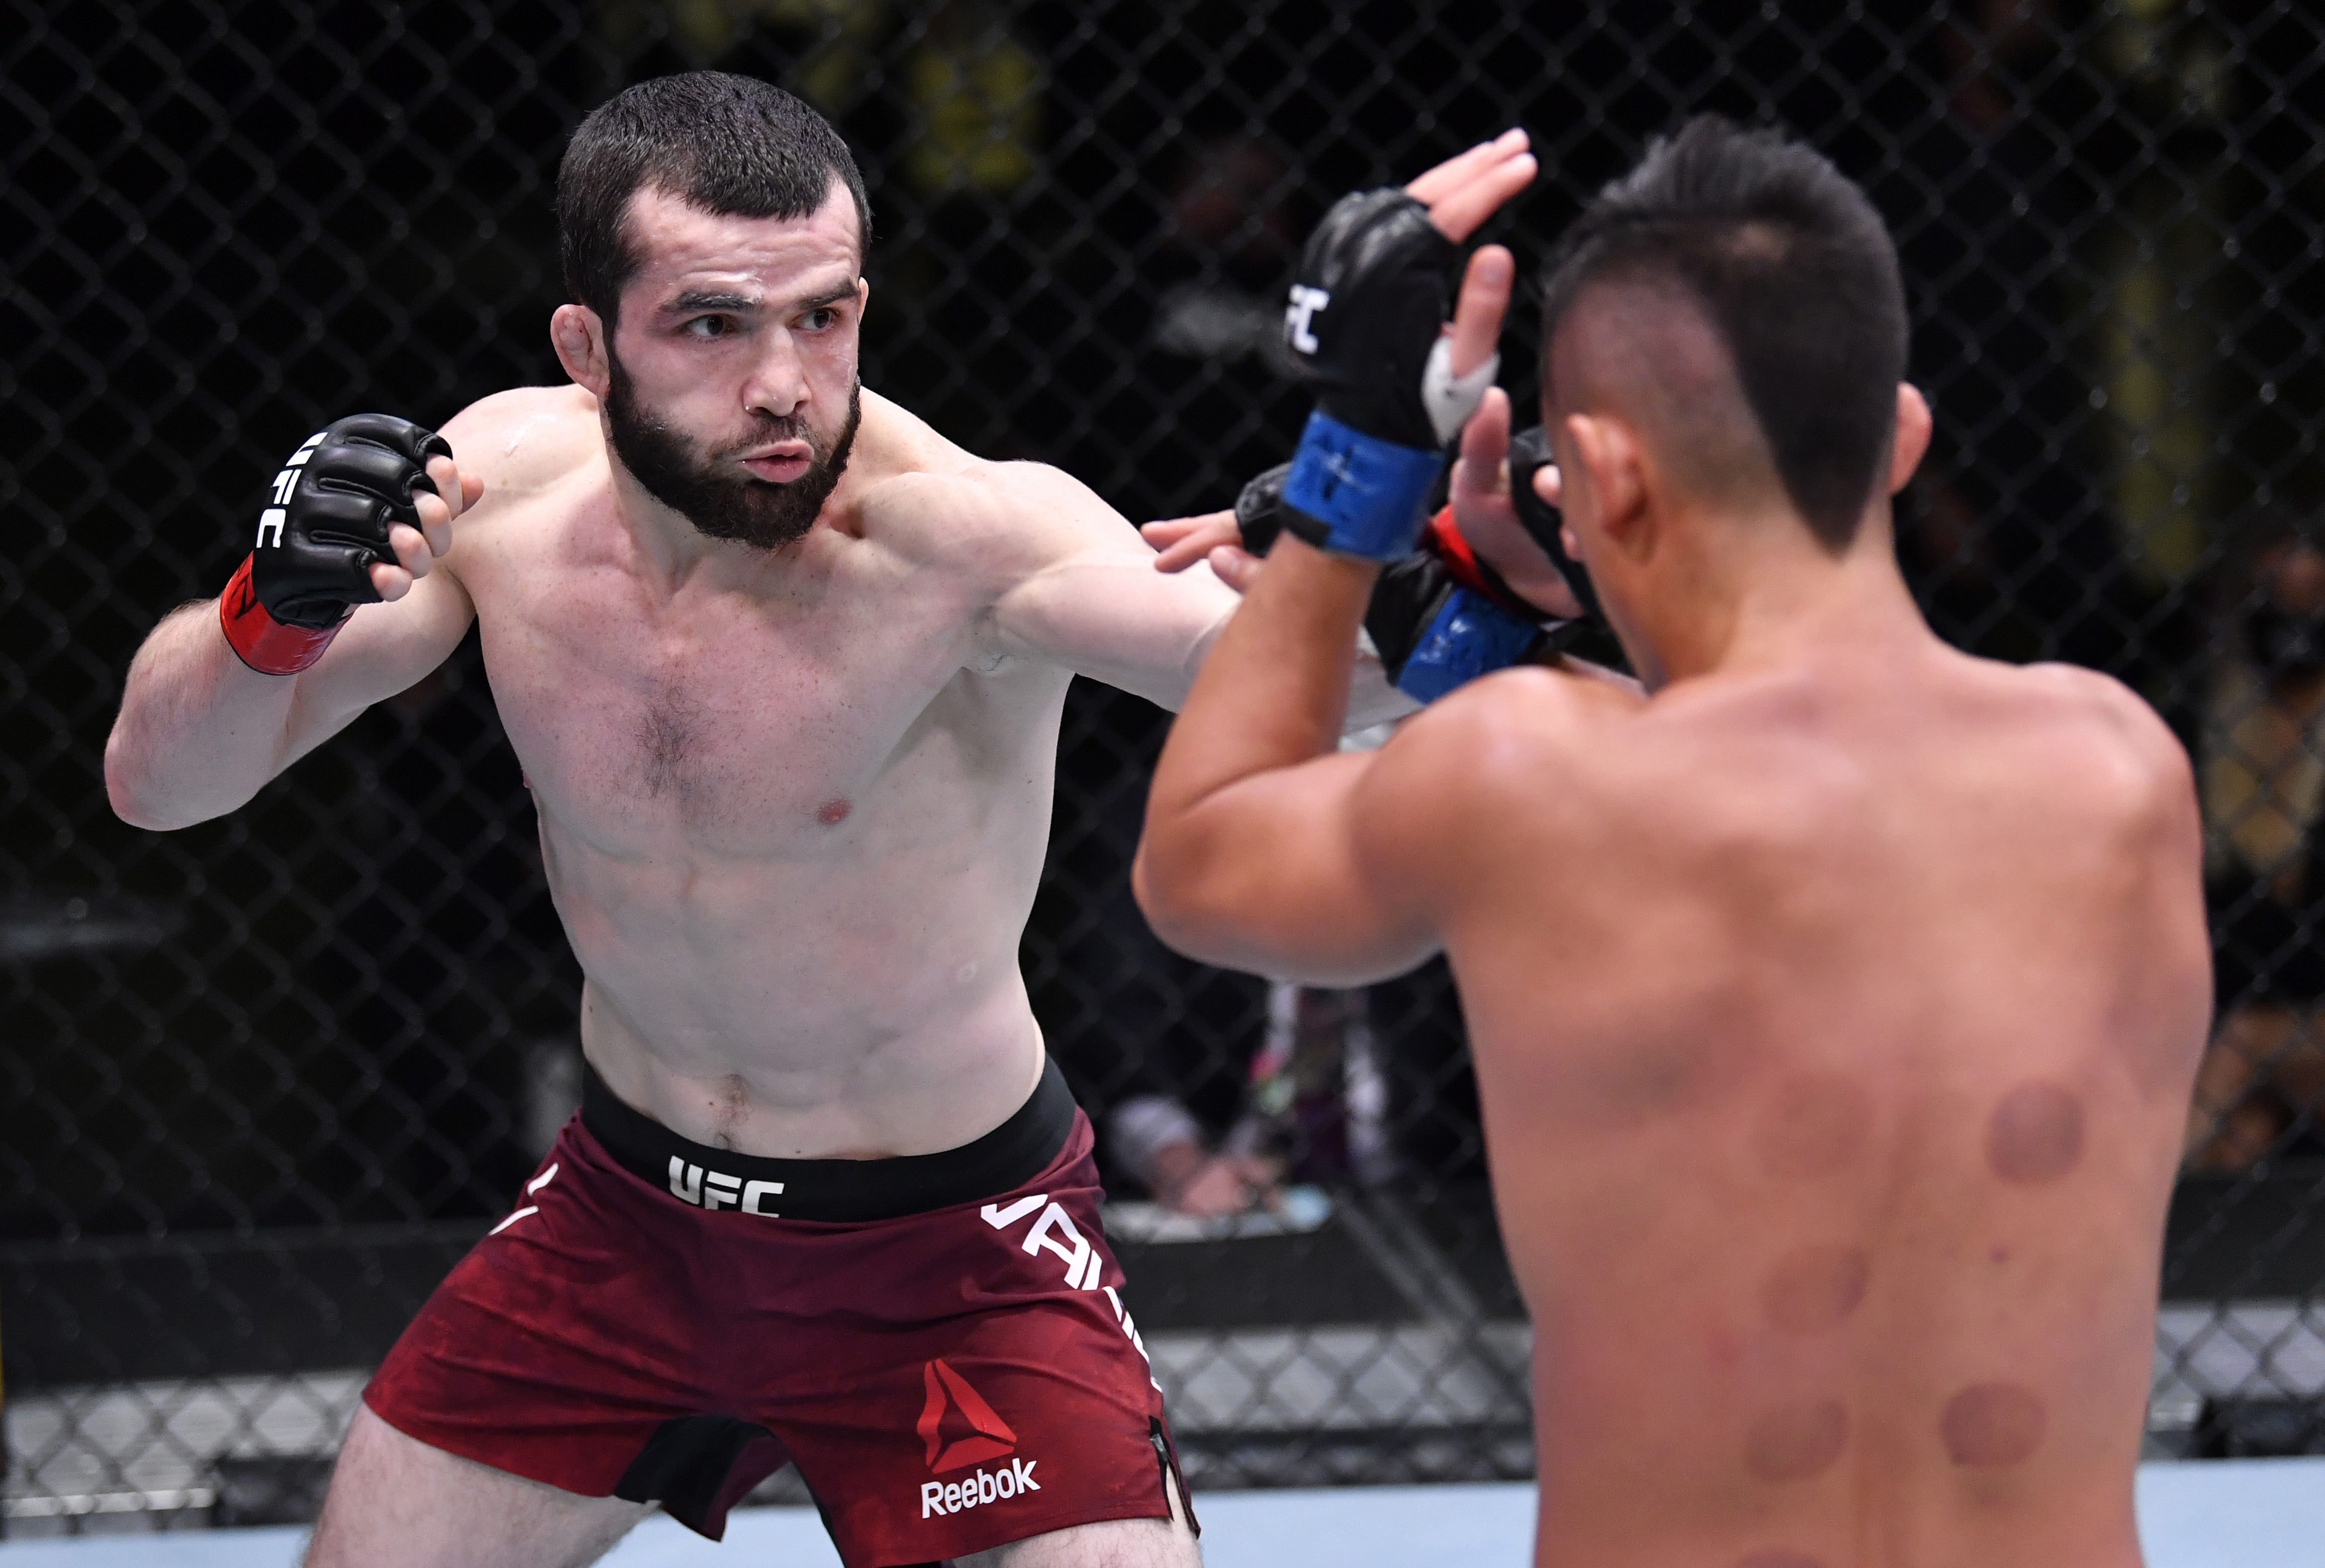 LAS VEGAS, NEVADA - FEBRUARY 06: In this handout image provided by UFC, (L-R) Timur Valiev of Russia punches Martin Day in their featherweight fight during the UFC Fight Night event at UFC APEX on February 06, 2021 in Las Vegas, Nevada. (Photo by Chris Unger/Zuffa LLC via Getty Images)